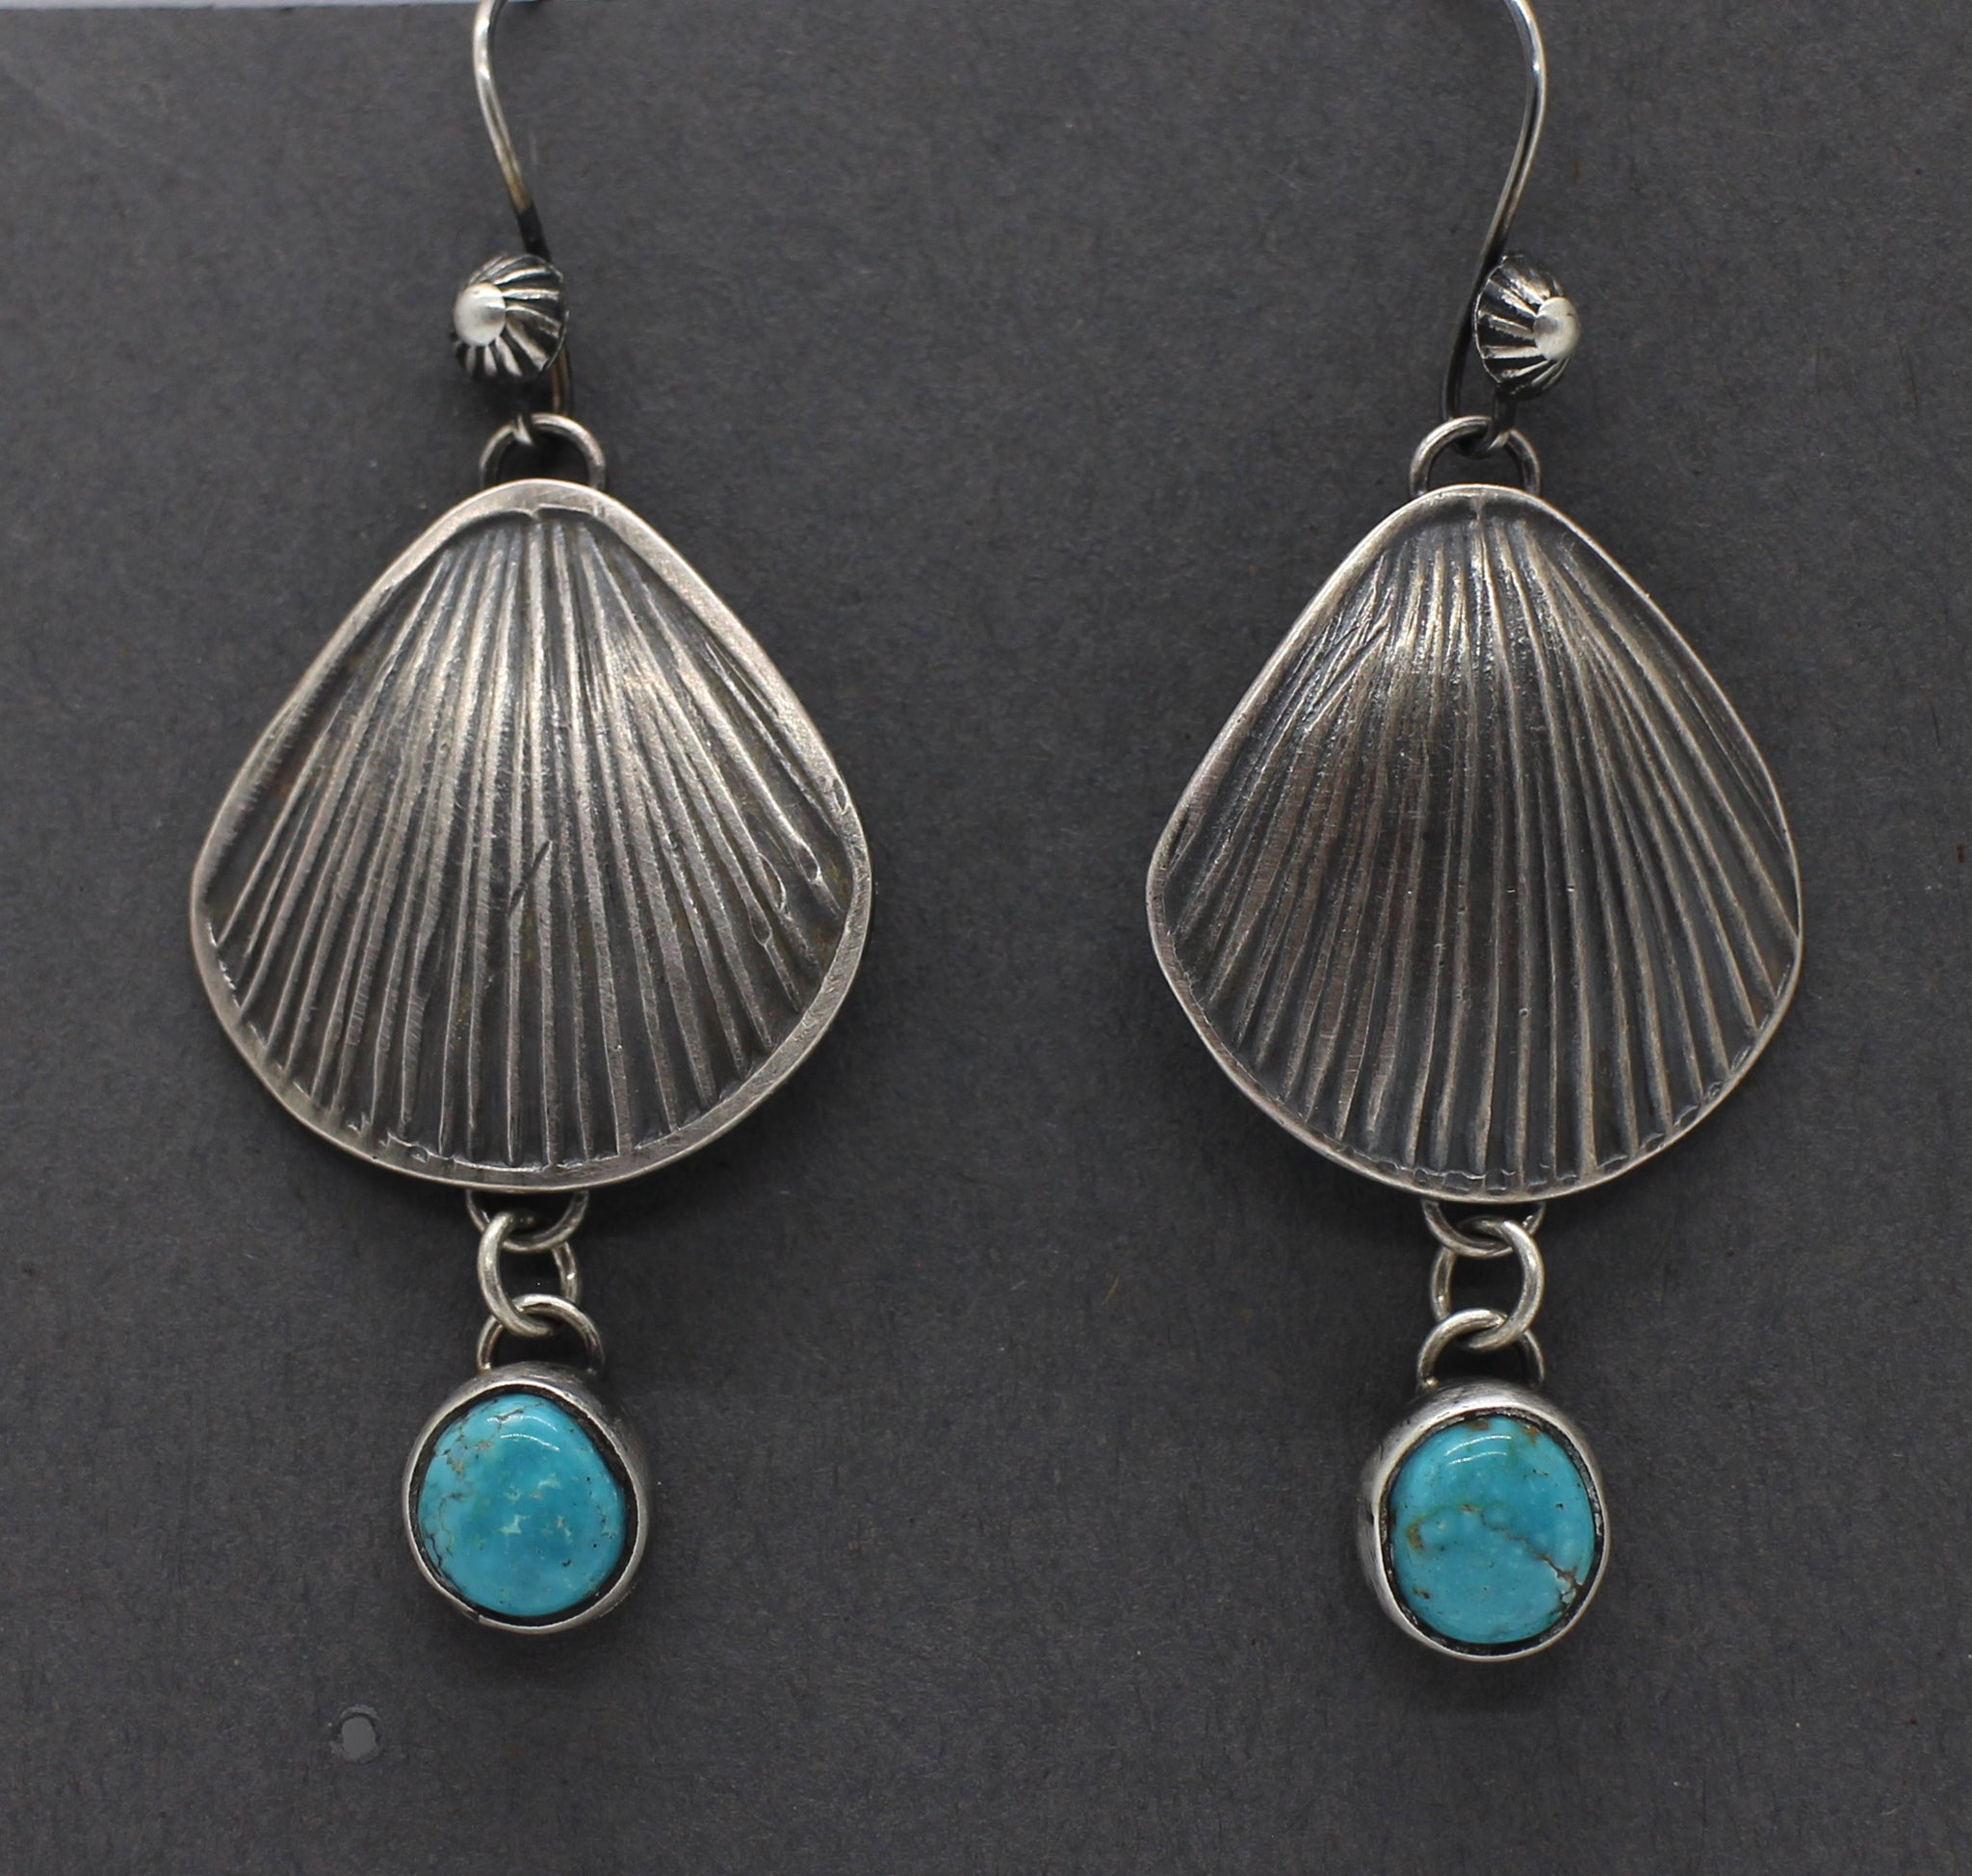 Jesse Robbins Silver and Stone Earrings